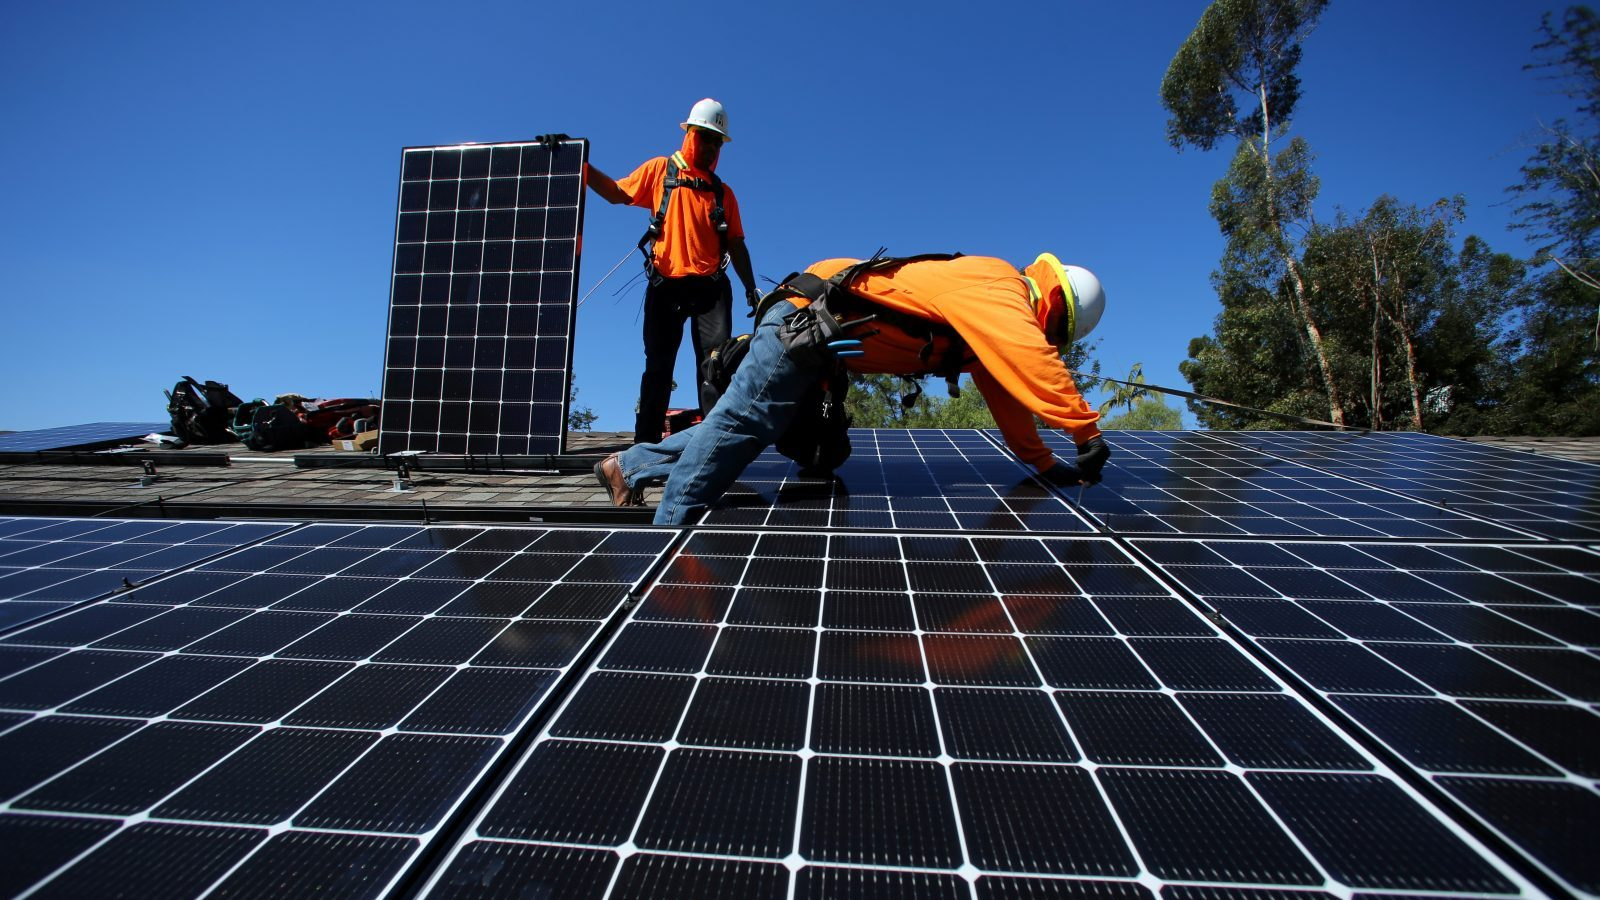 Solar installers from Baker Electric place solar panels on the roof of a residential home in Scripps Ranch, San Diego, California, U.S. October 14, 2016.  Picture taken October 14, 2016.      REUTERS/Mike Blake - S1AEUJDNLUAA